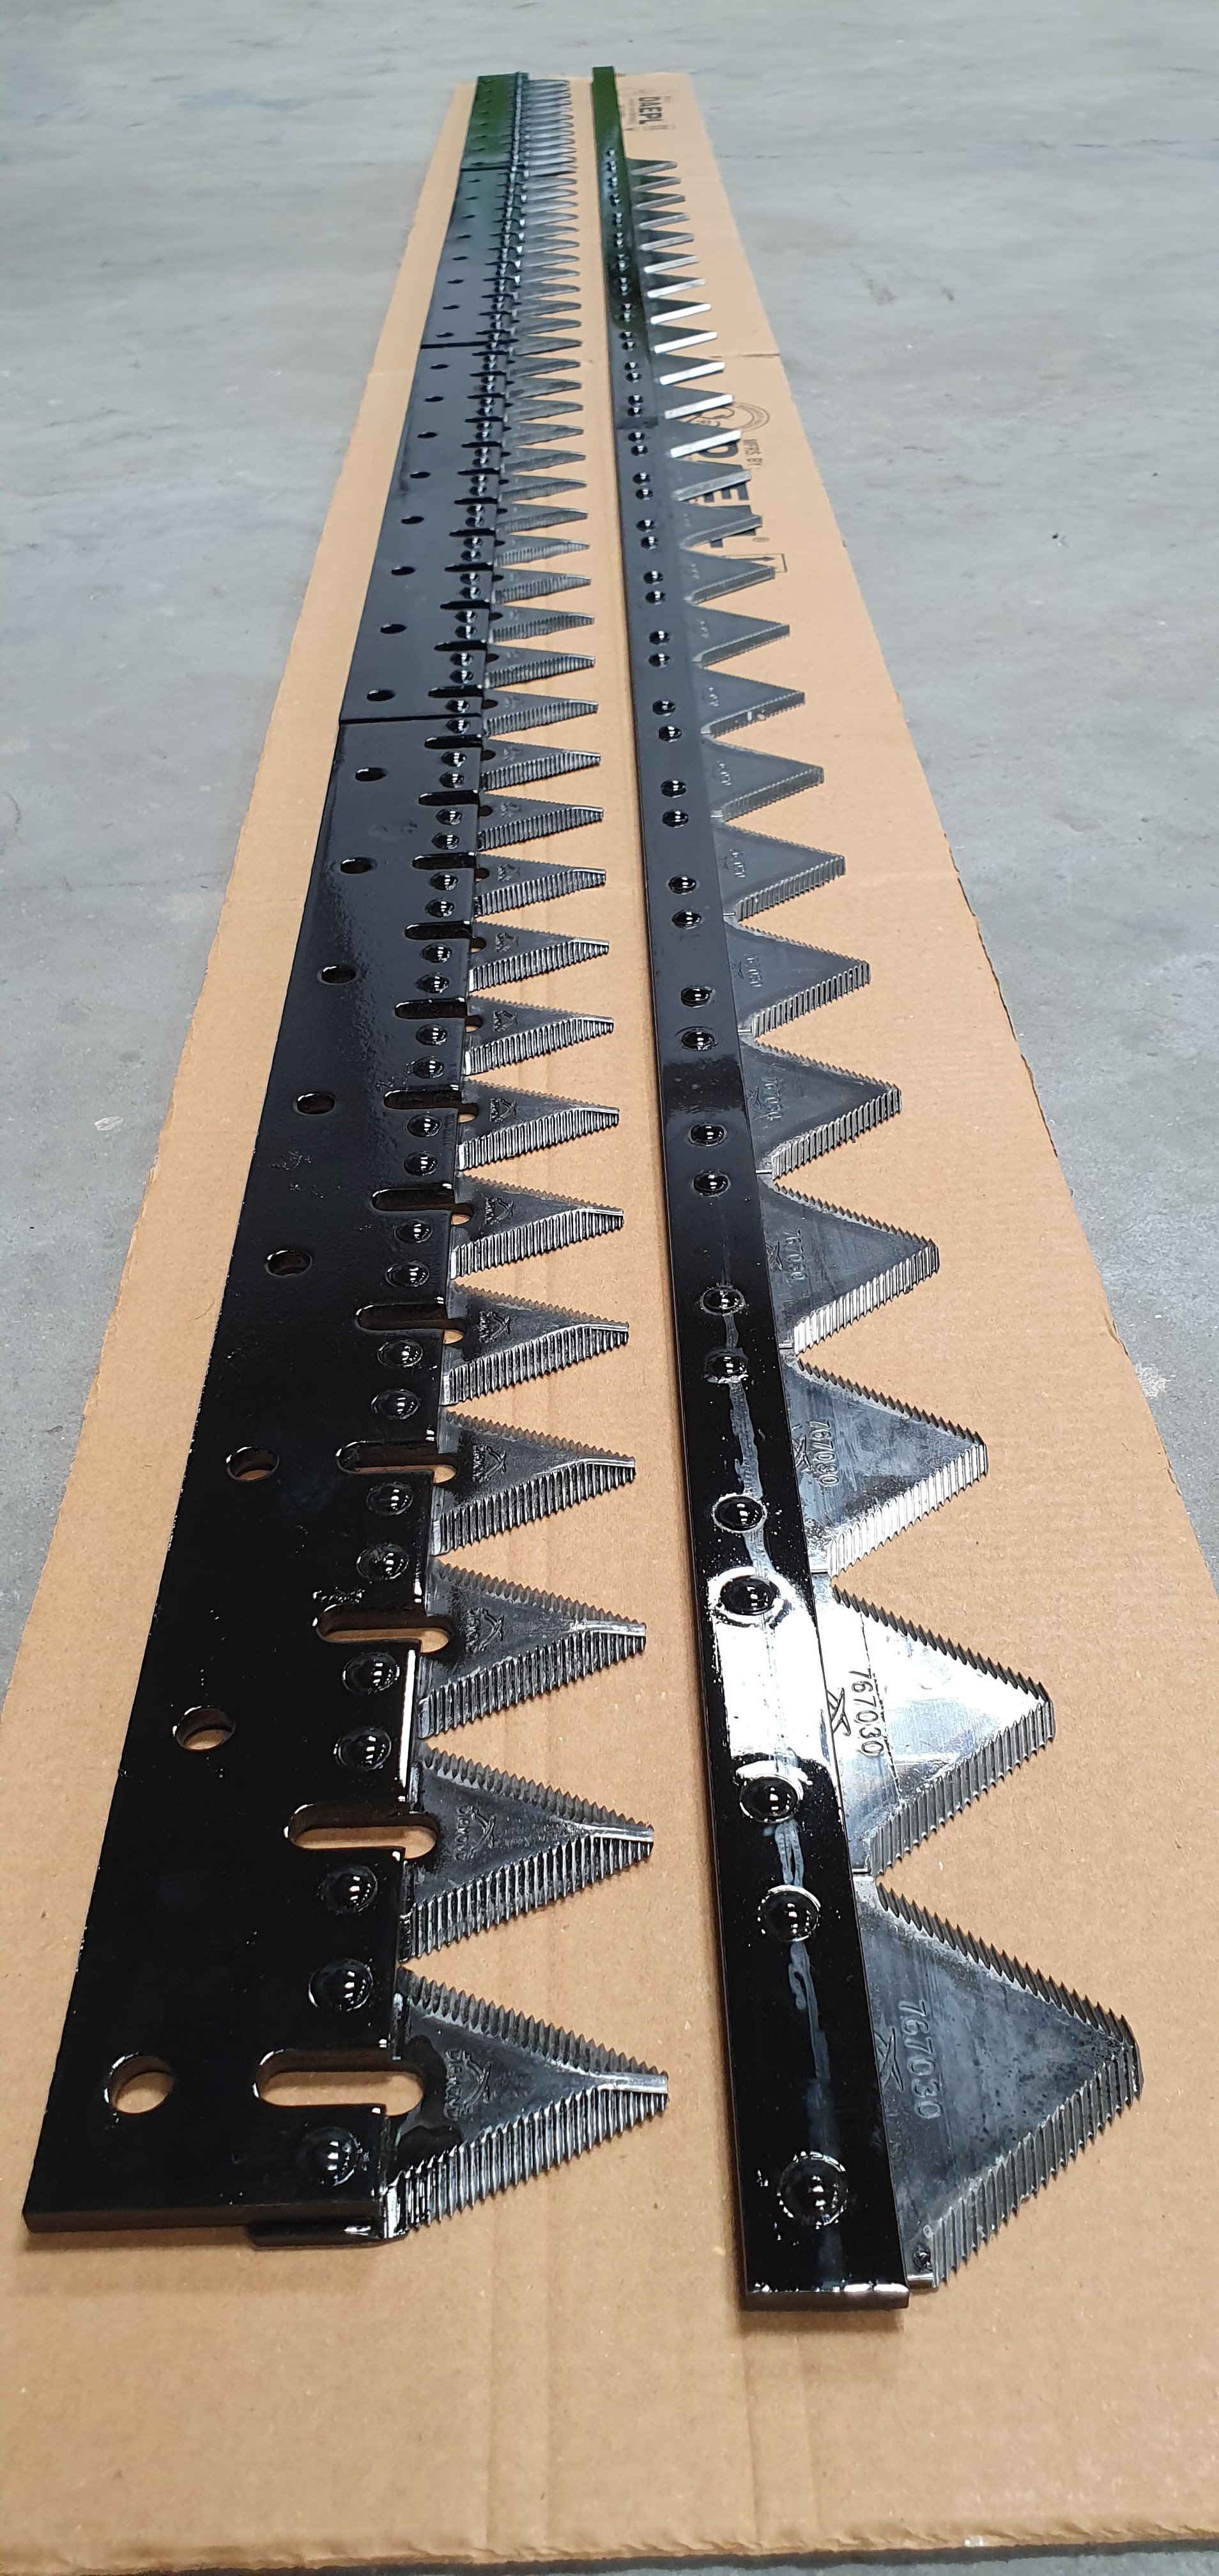 TRACK COMBINE CUTTER ASSEMBLY